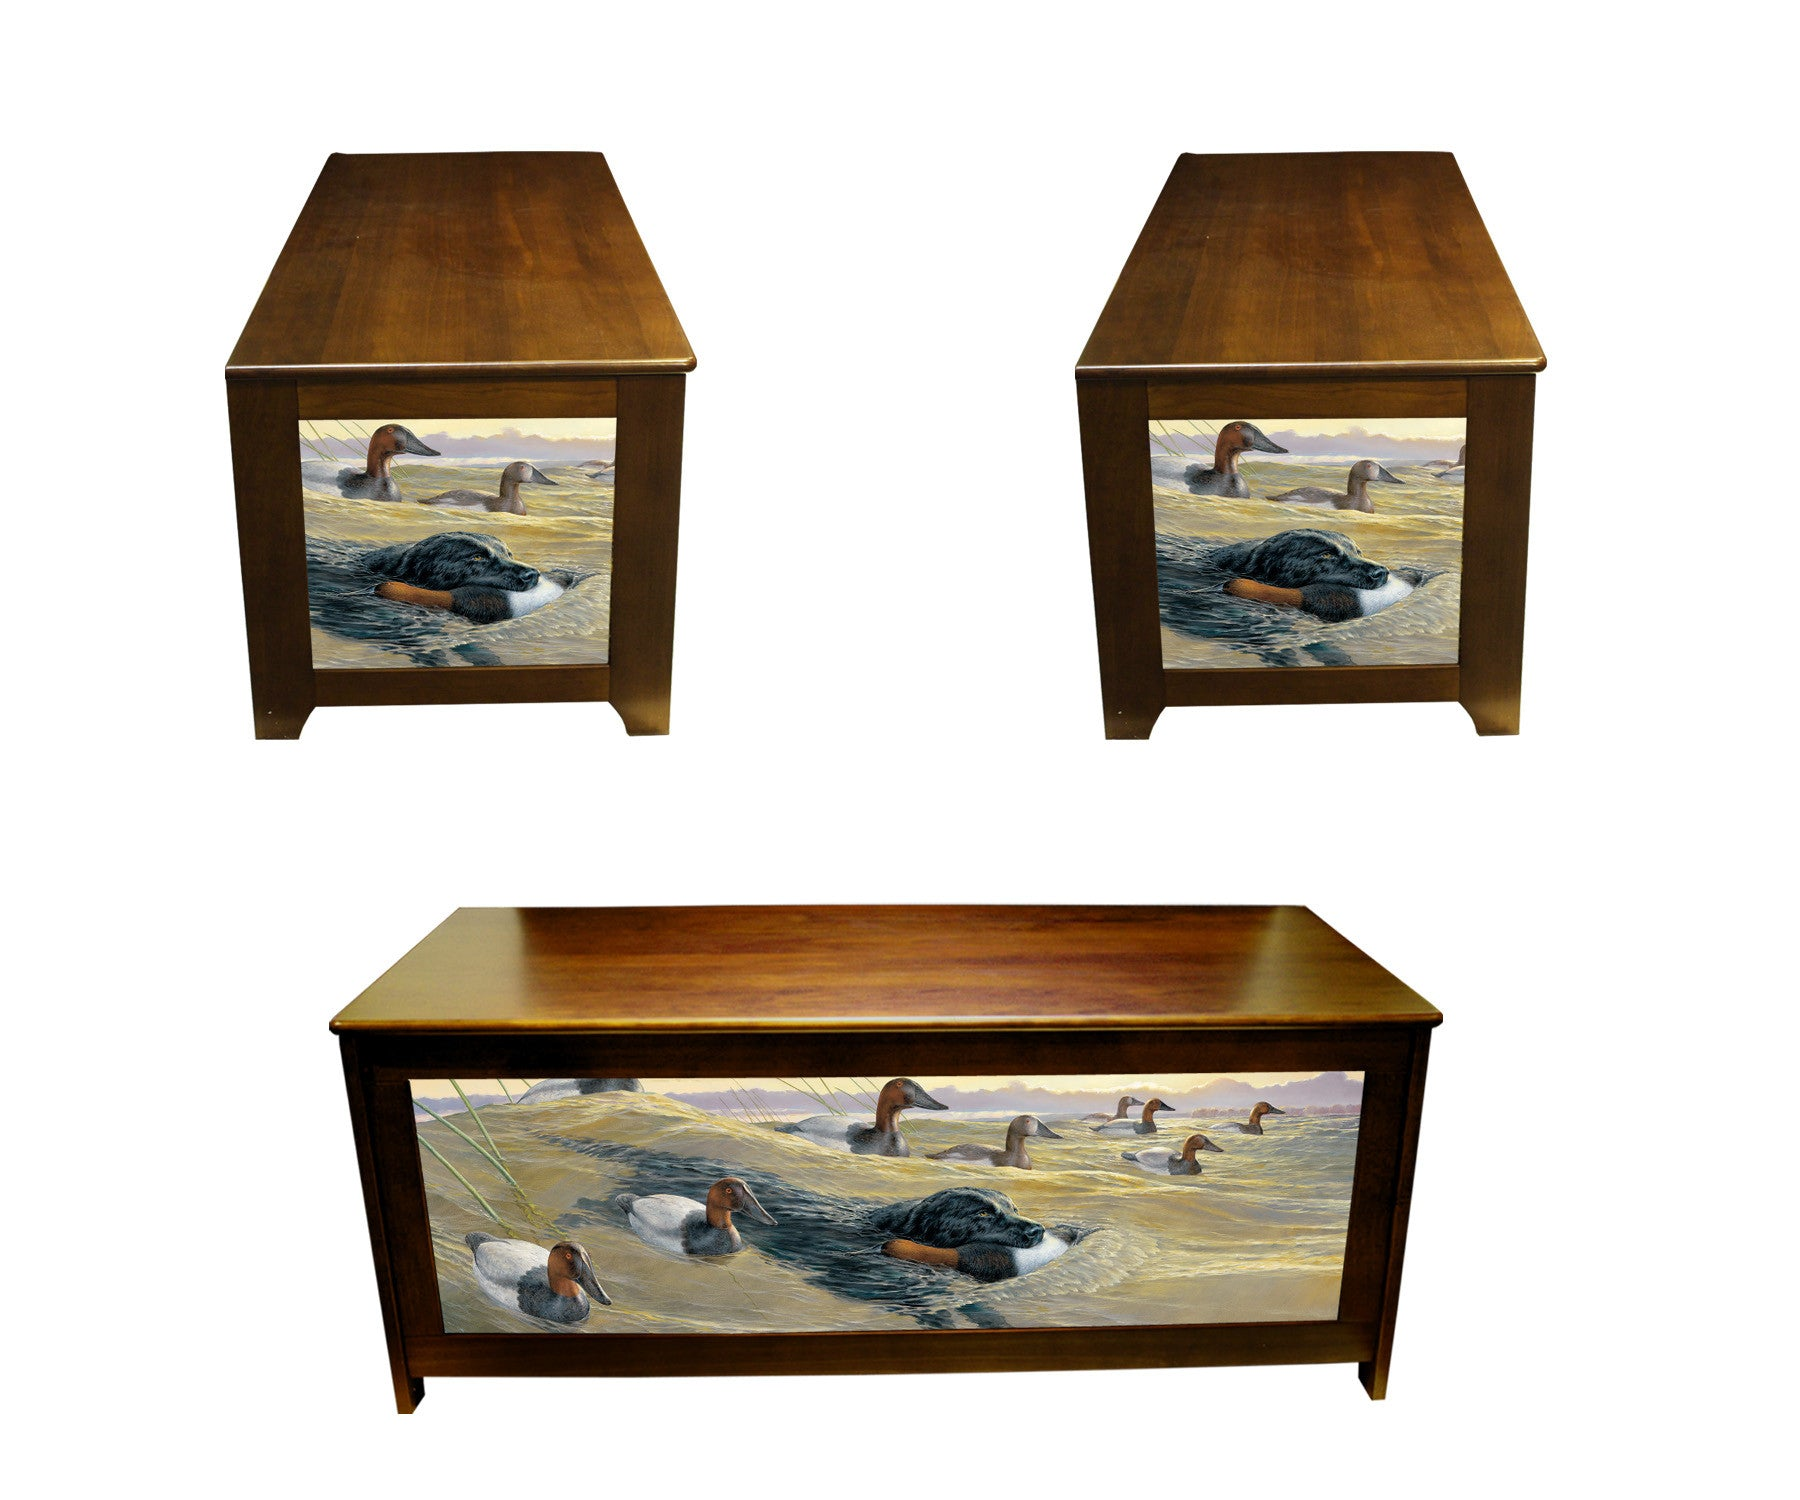 blanket chest with AT HIS BEST by Van Gilder